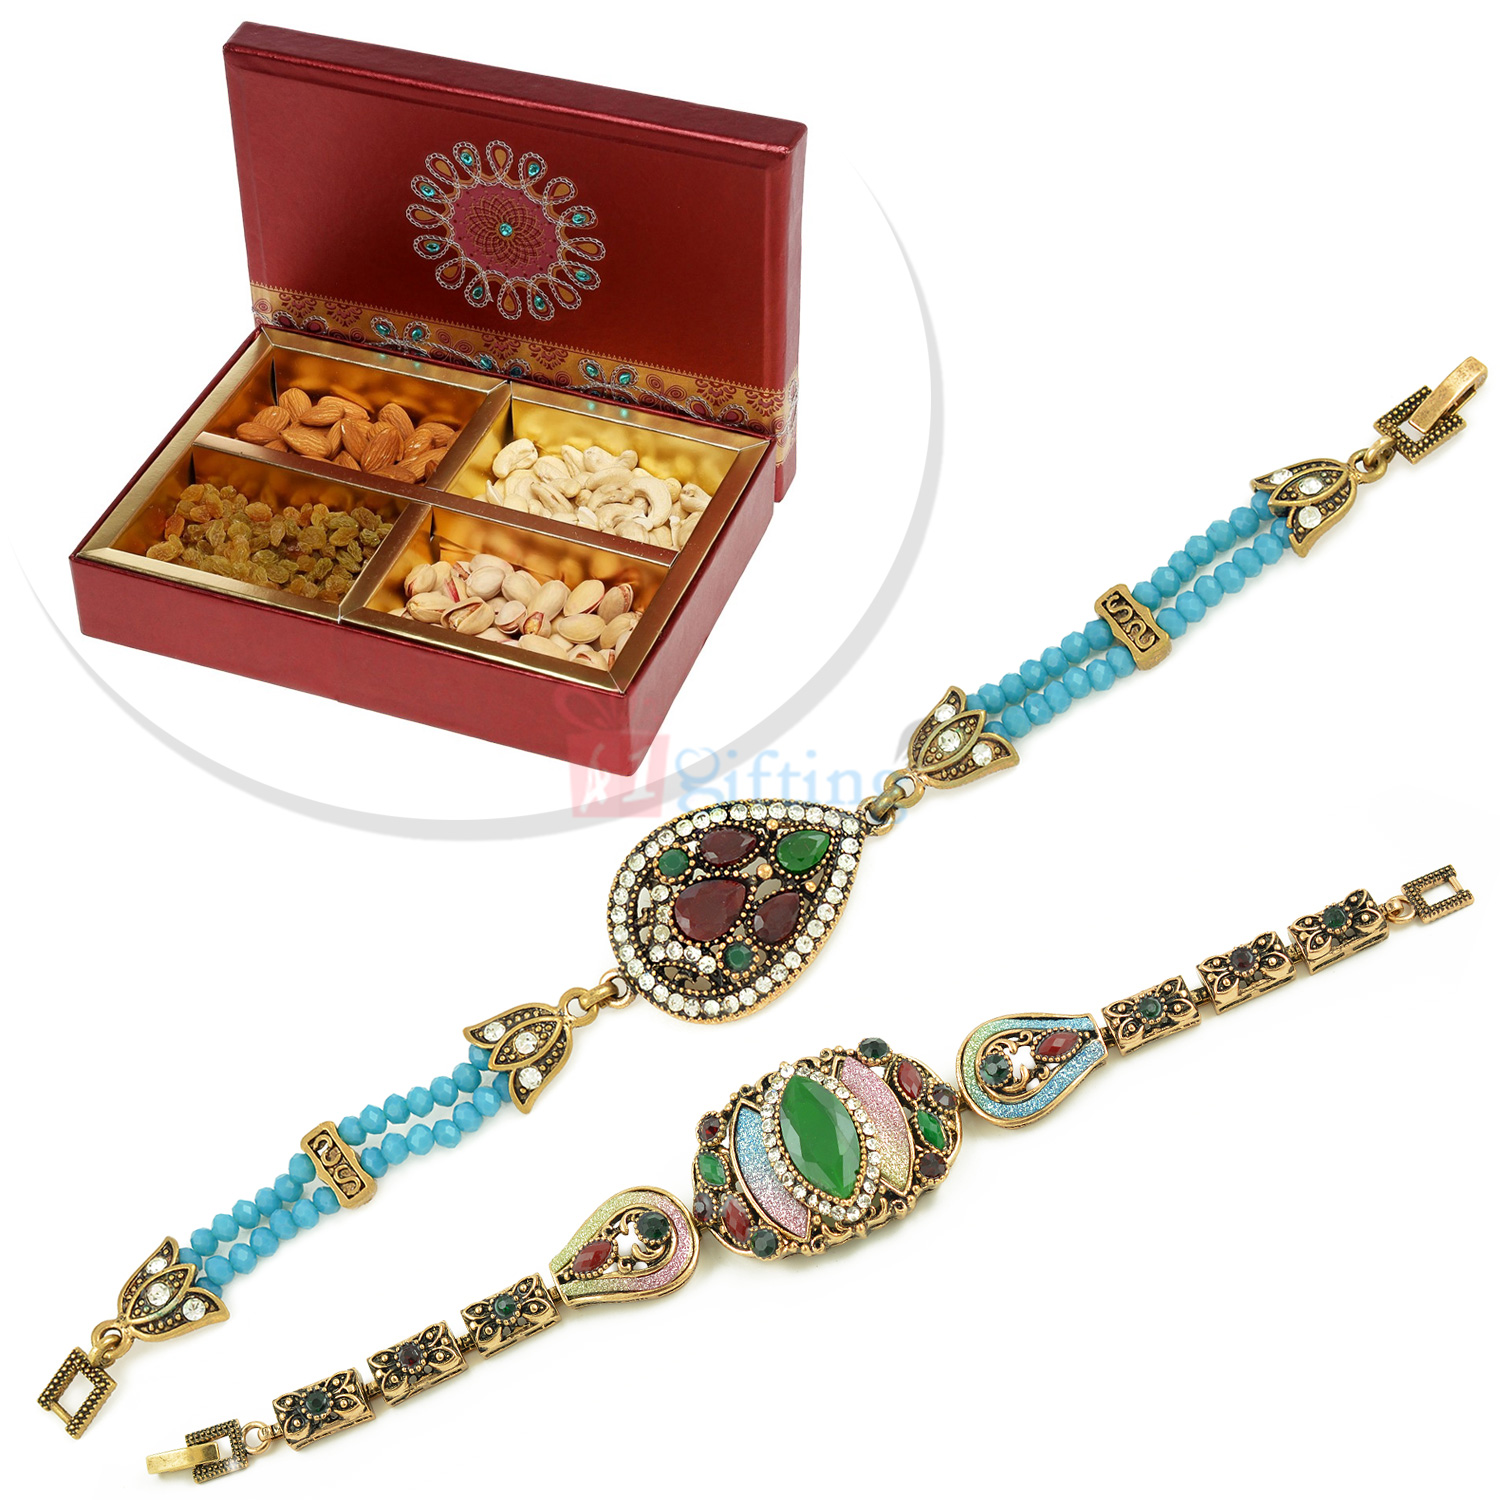 Antique Looking 2 Bracelet with 4 type Dryfruits Hamper